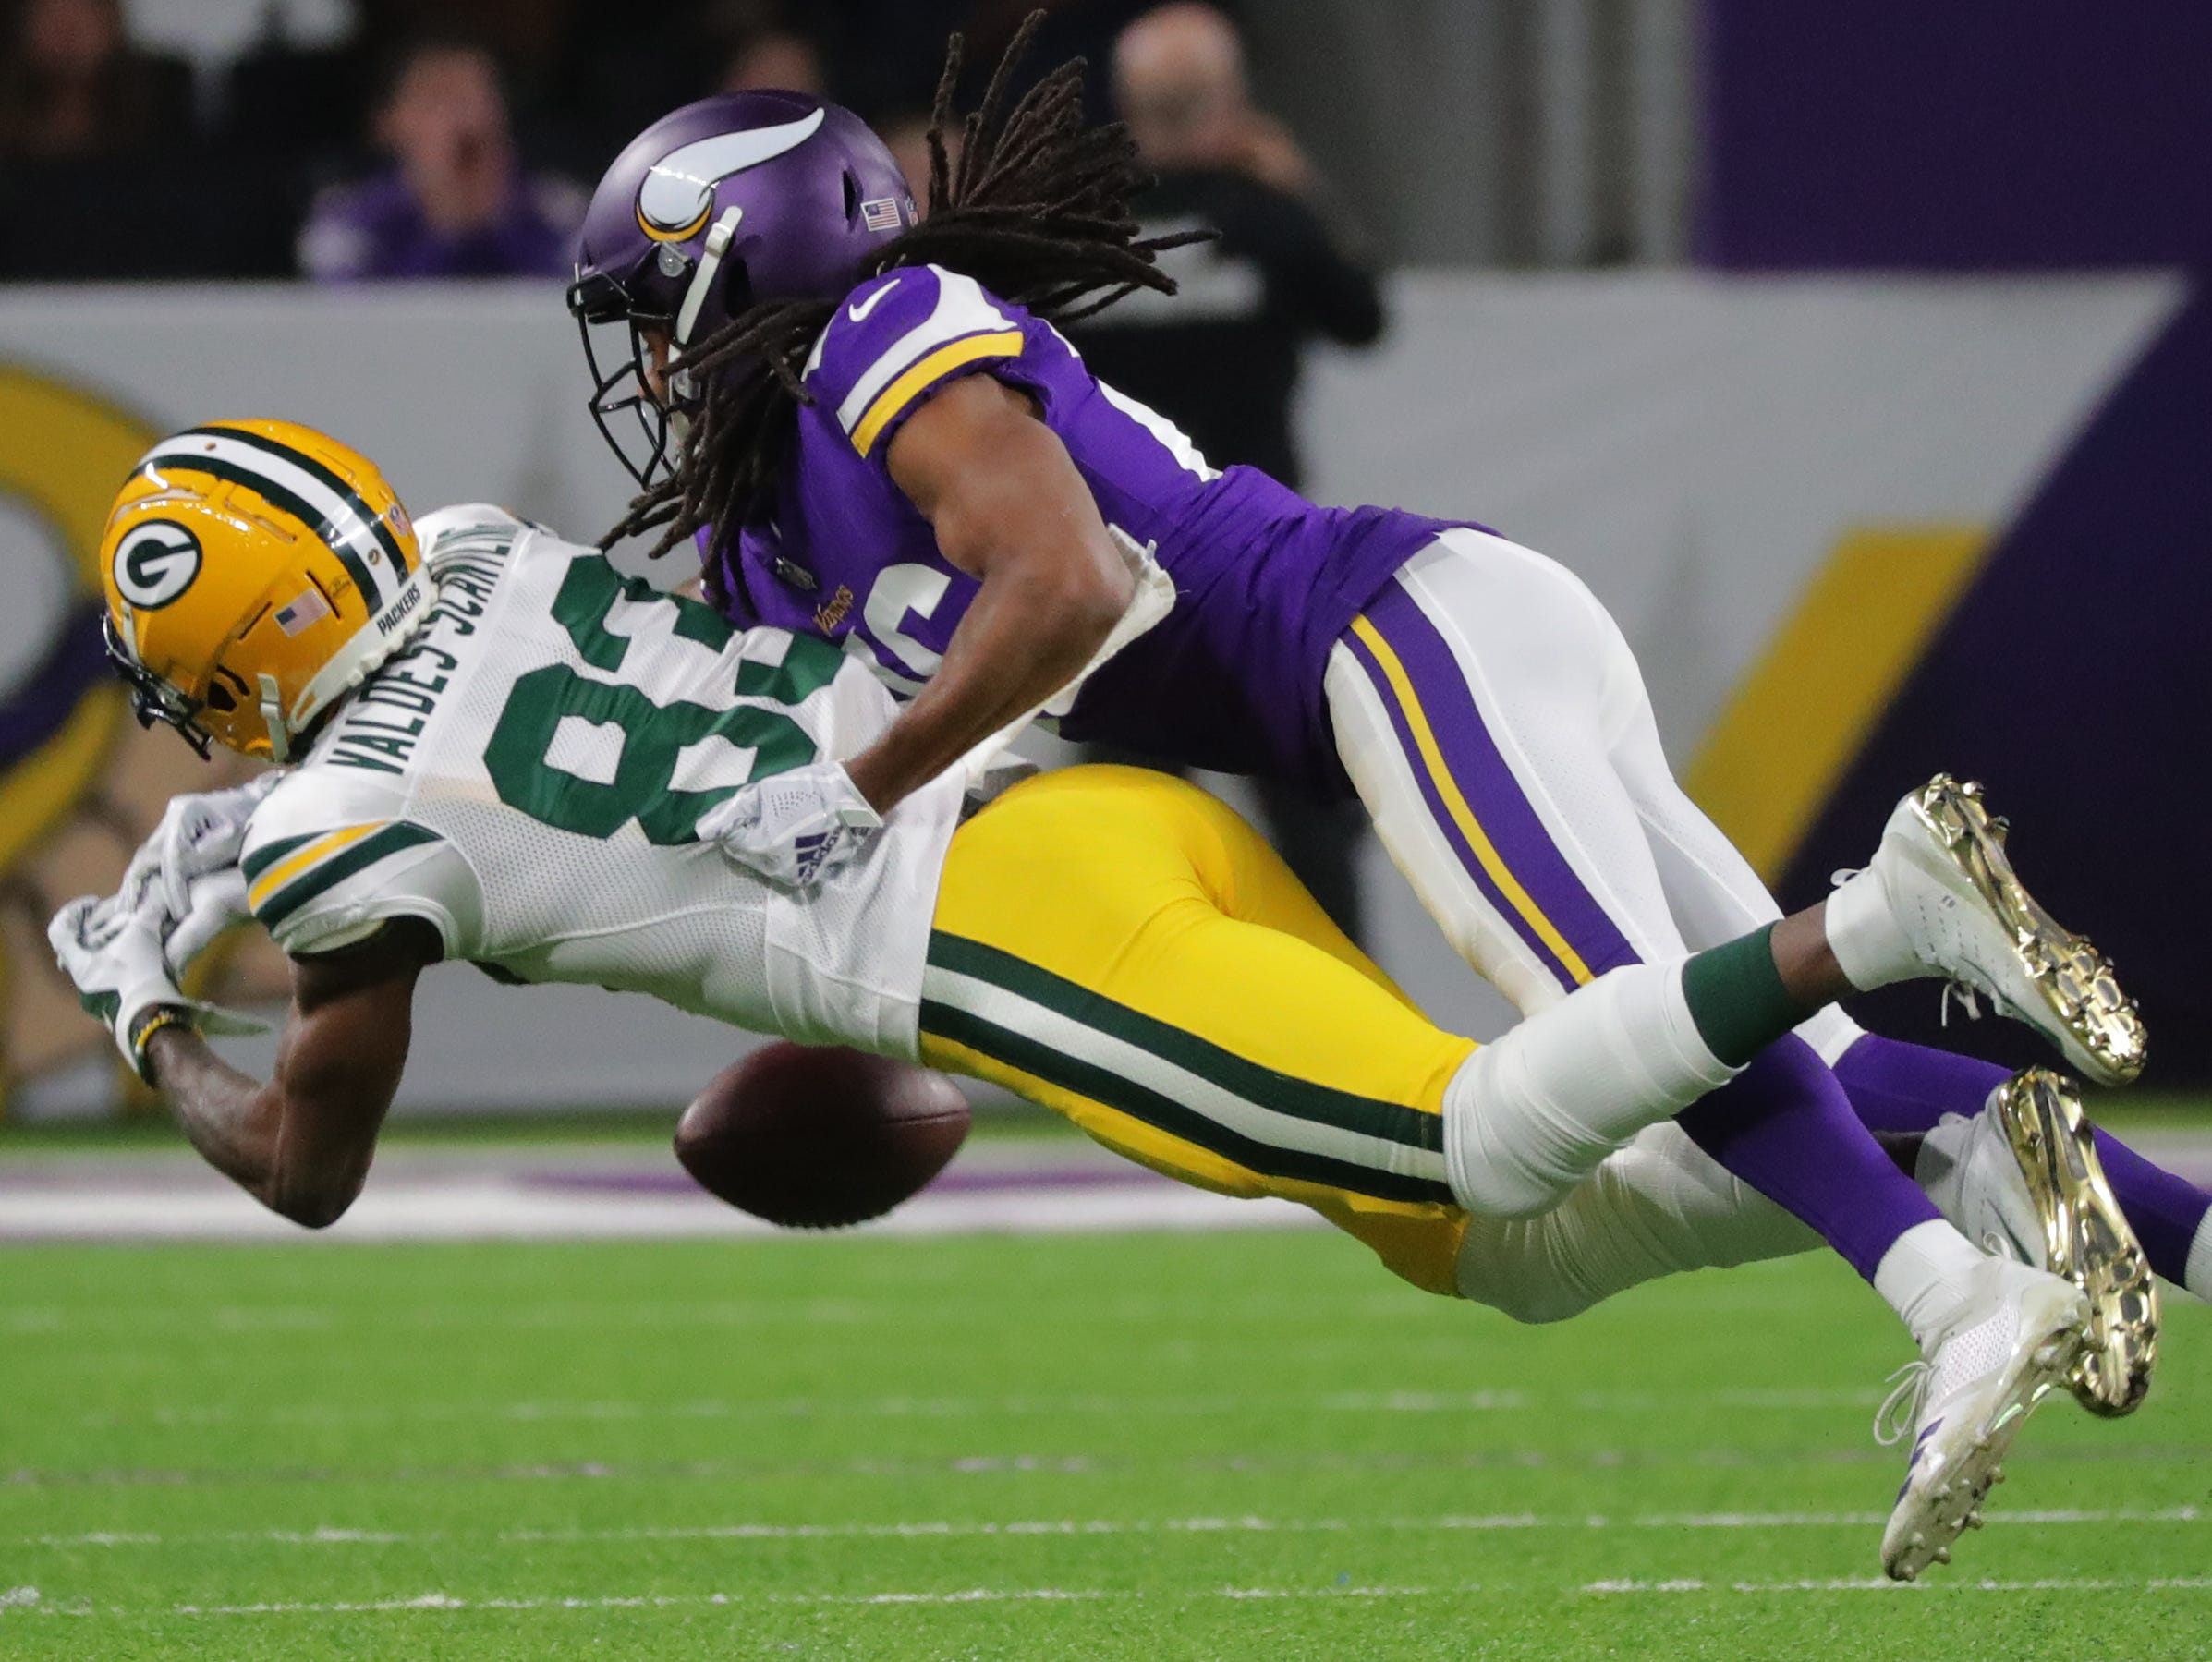 Green Bay Packers wide receiver Marquez Valdes-Scantling (83) is unable to catch a ball while being covered by Minnesota Vikings cornerback Trae Waynes (26) during the first quarter of their game against the Minnesota Vikings Sunday, November 25, 2018 at U.S. Bank Stadium in Minneapolis, Minn.